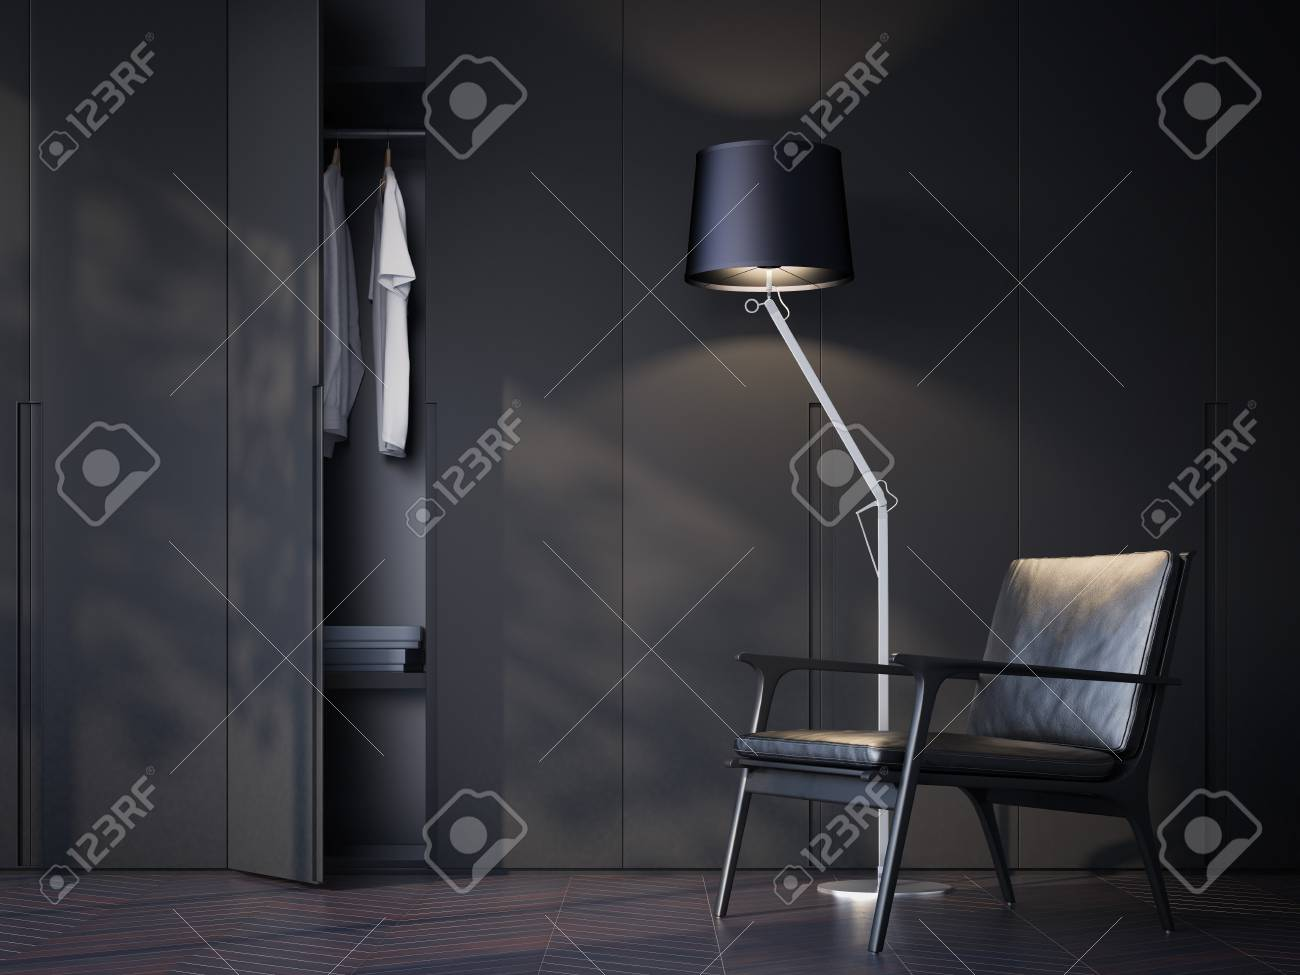 Modern wardrobe room with black leather chair. 3d rendering - 75307361